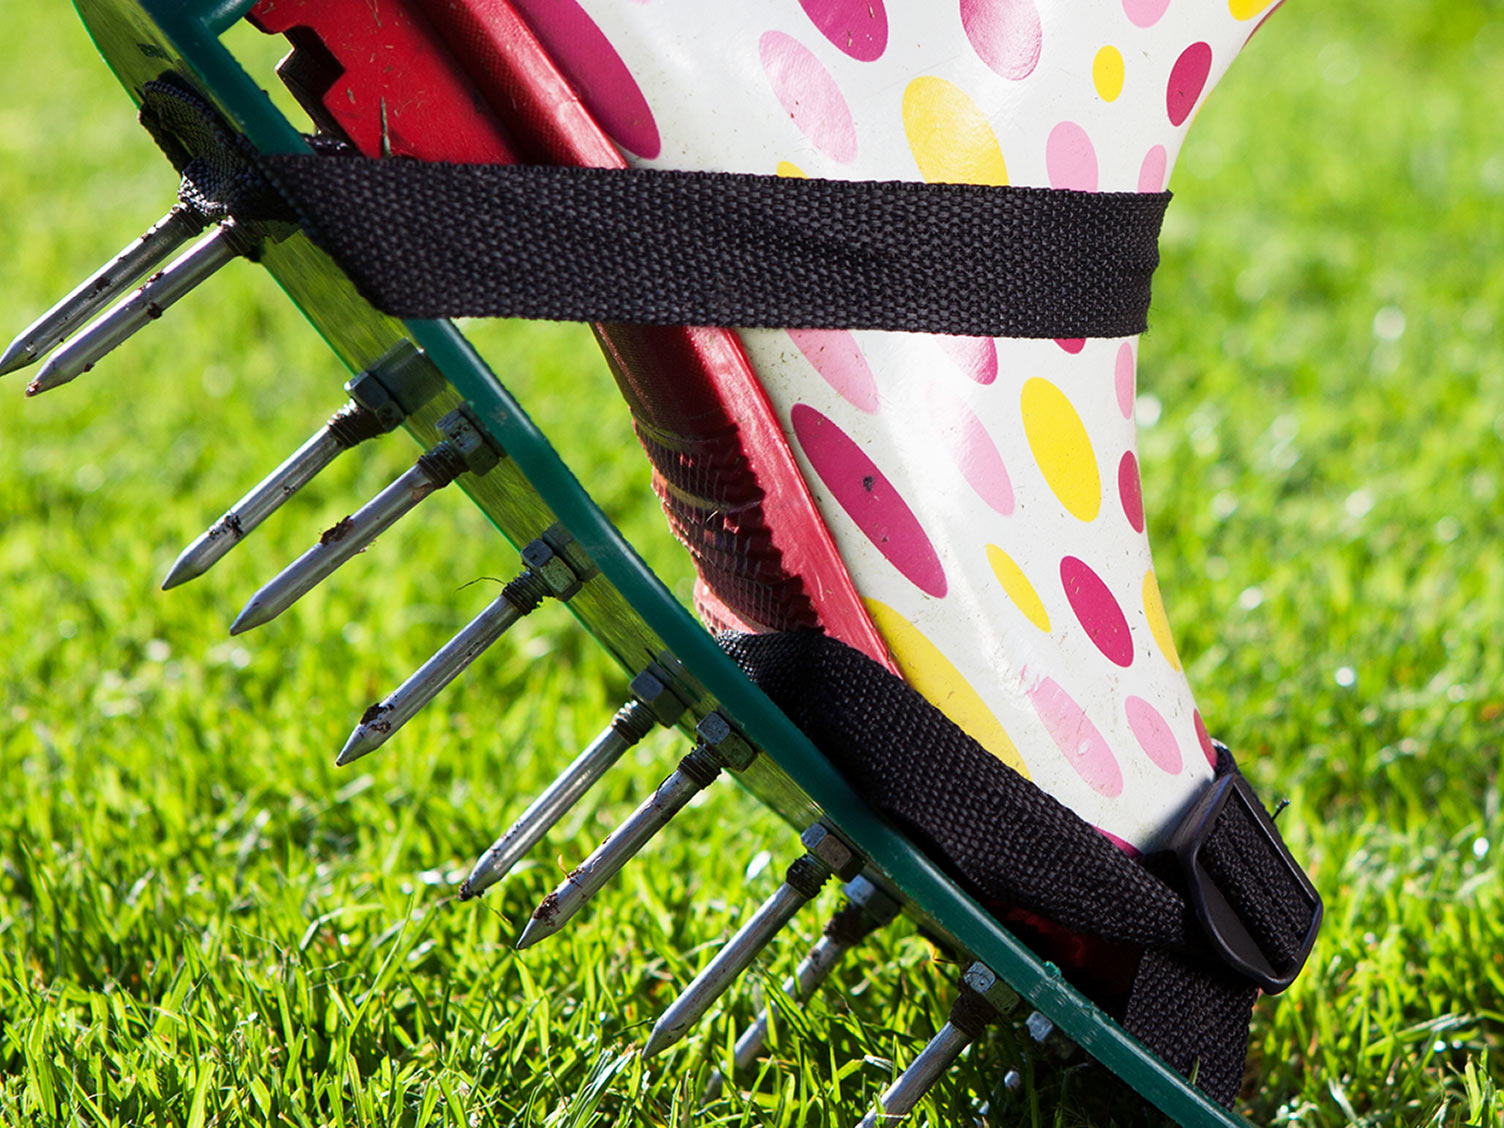 A Guide To Using Lawn Aerator